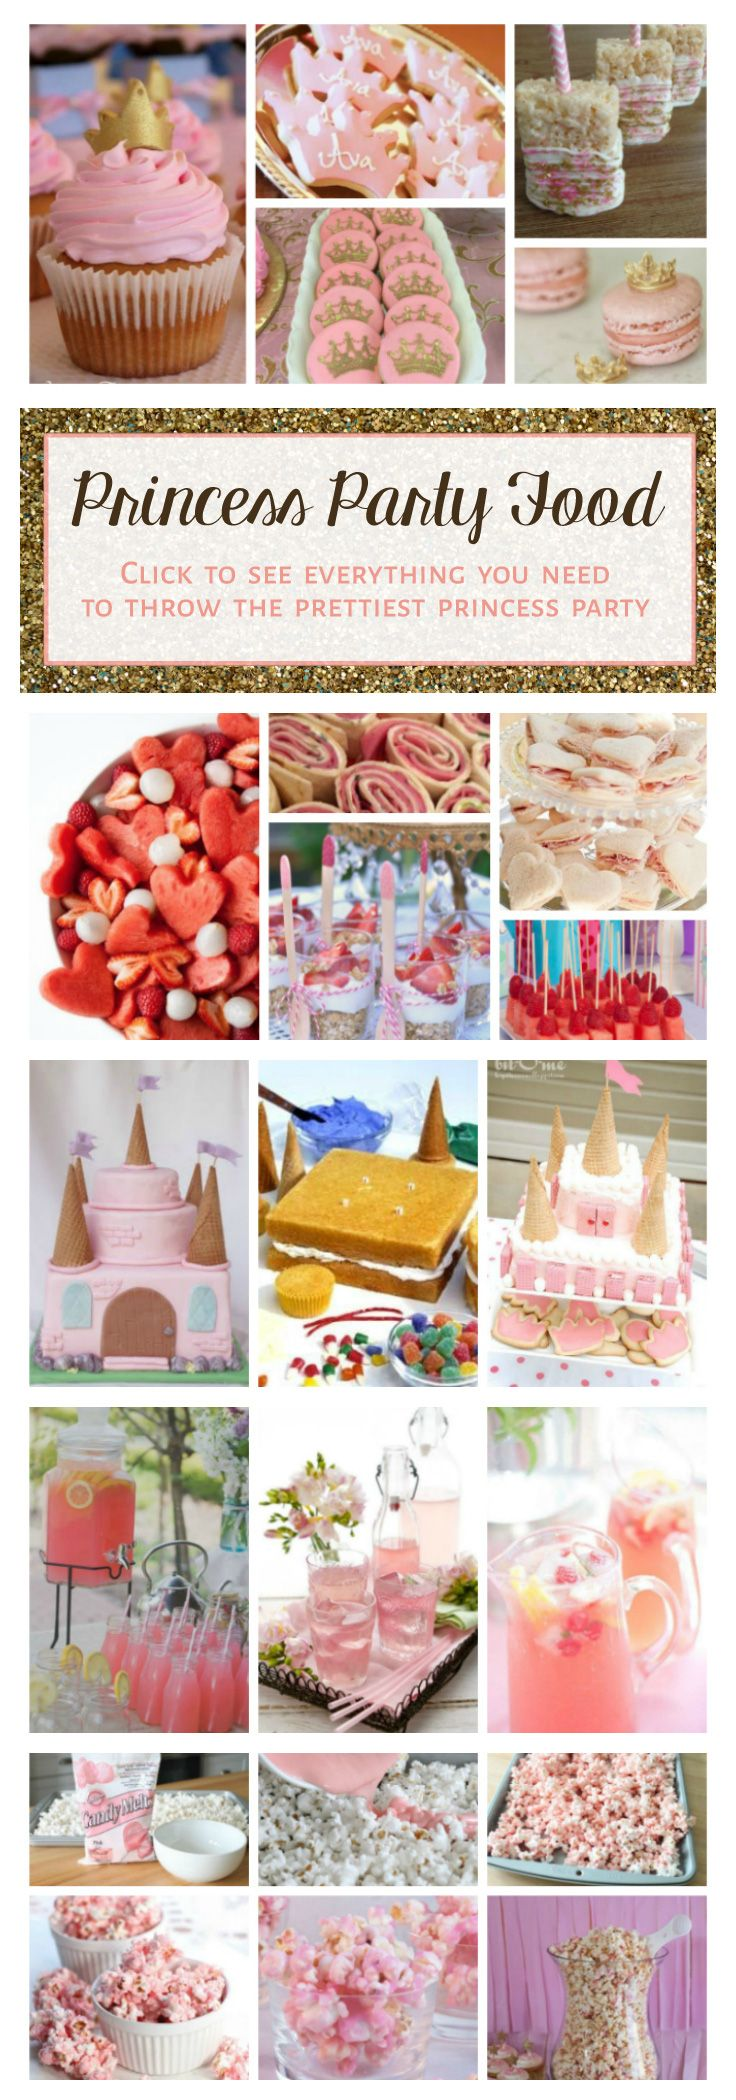 best 25+ princess party decorations ideas on pinterest | princess